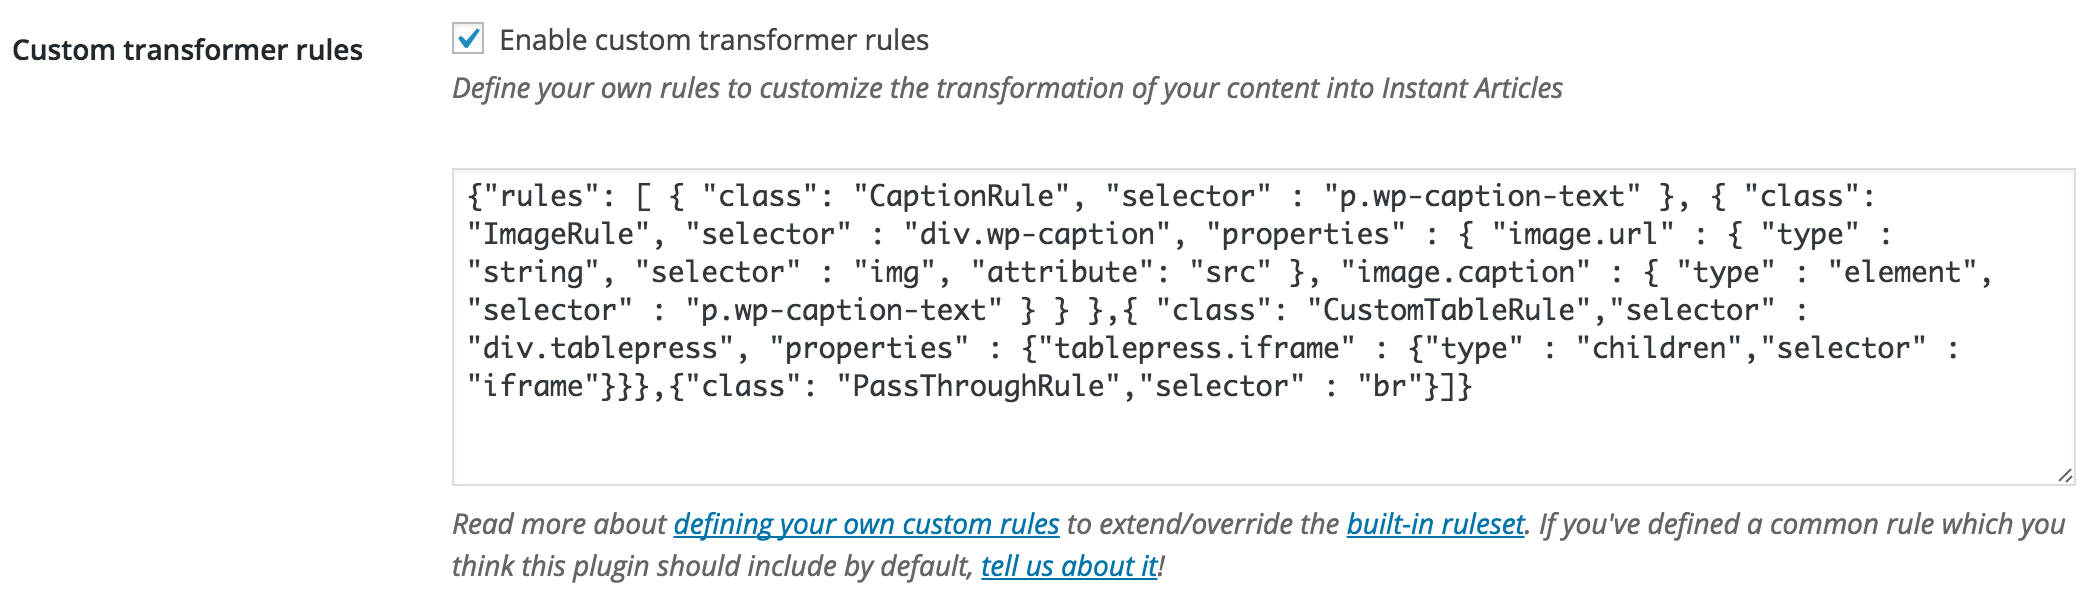 Define your own rules to customize the transformation of your content into Instant Articles